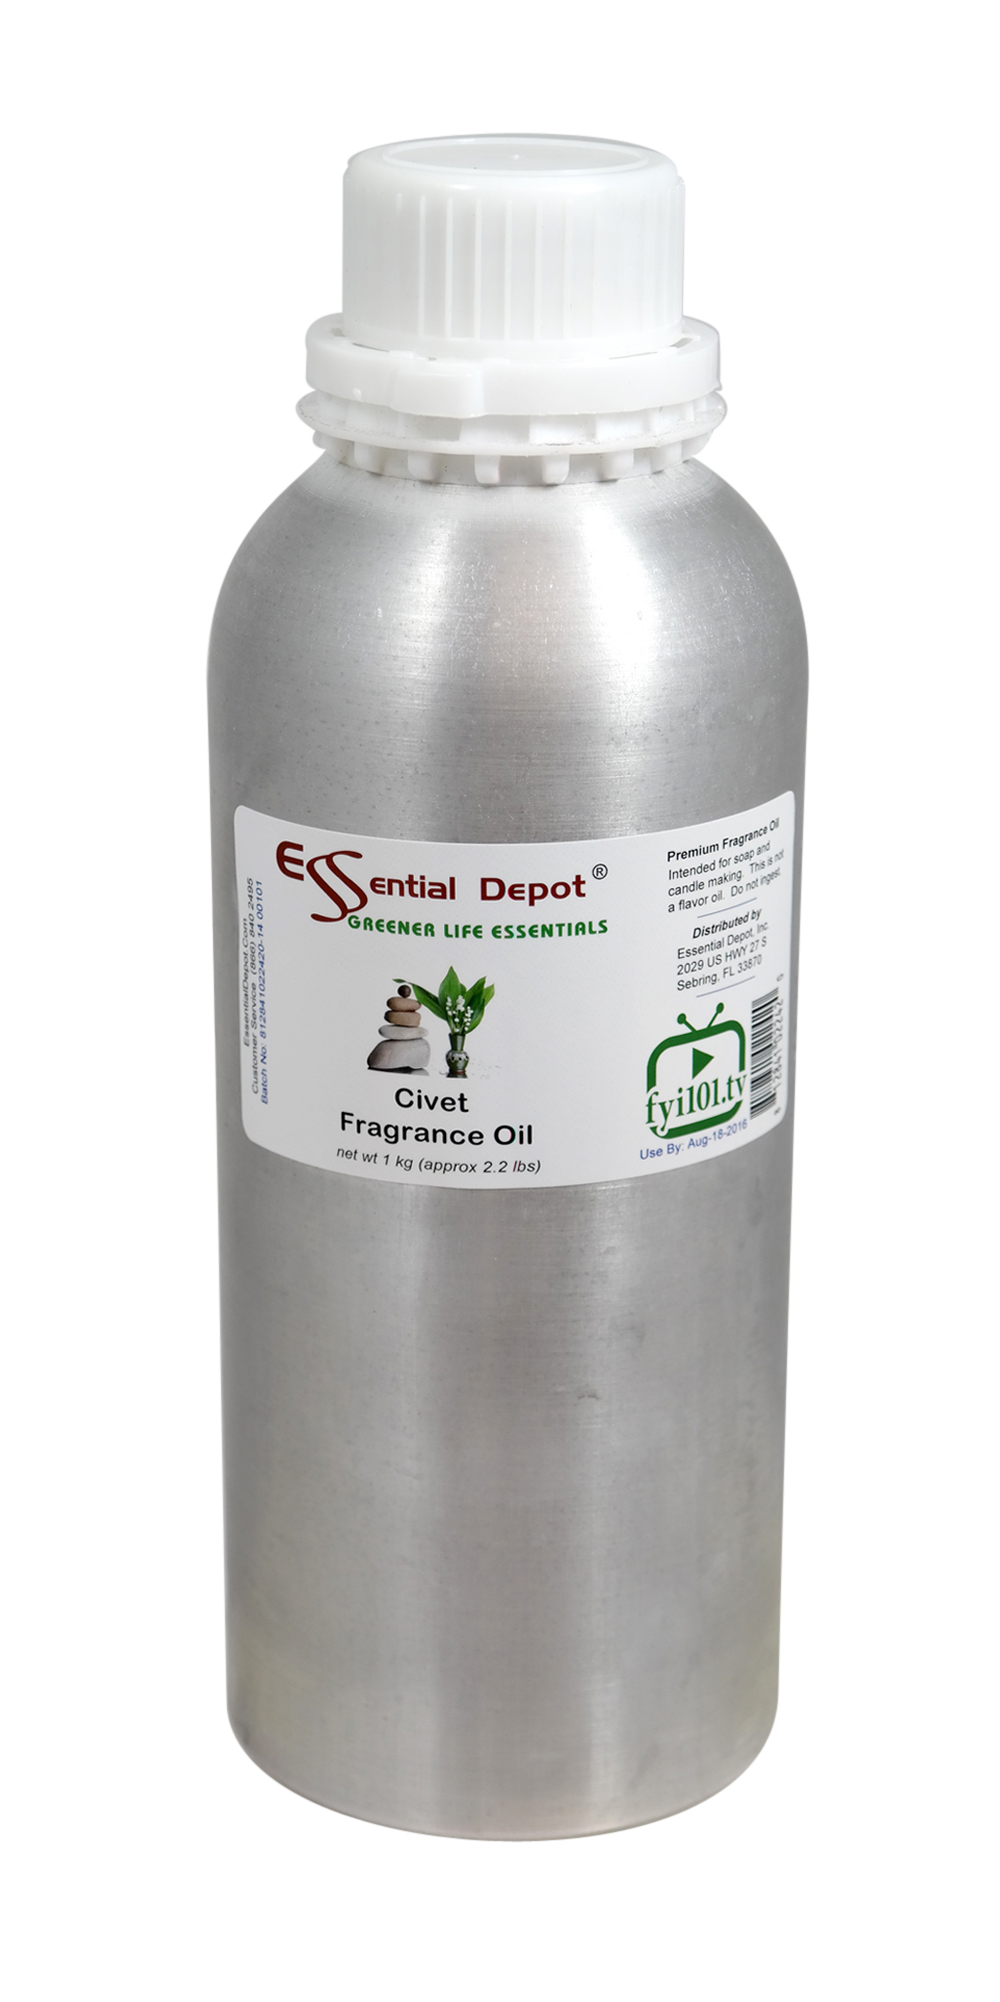 Civet Fragrance Oil - 1 kg. - Approx 2.2 lbs. - FREE US SHIPPING